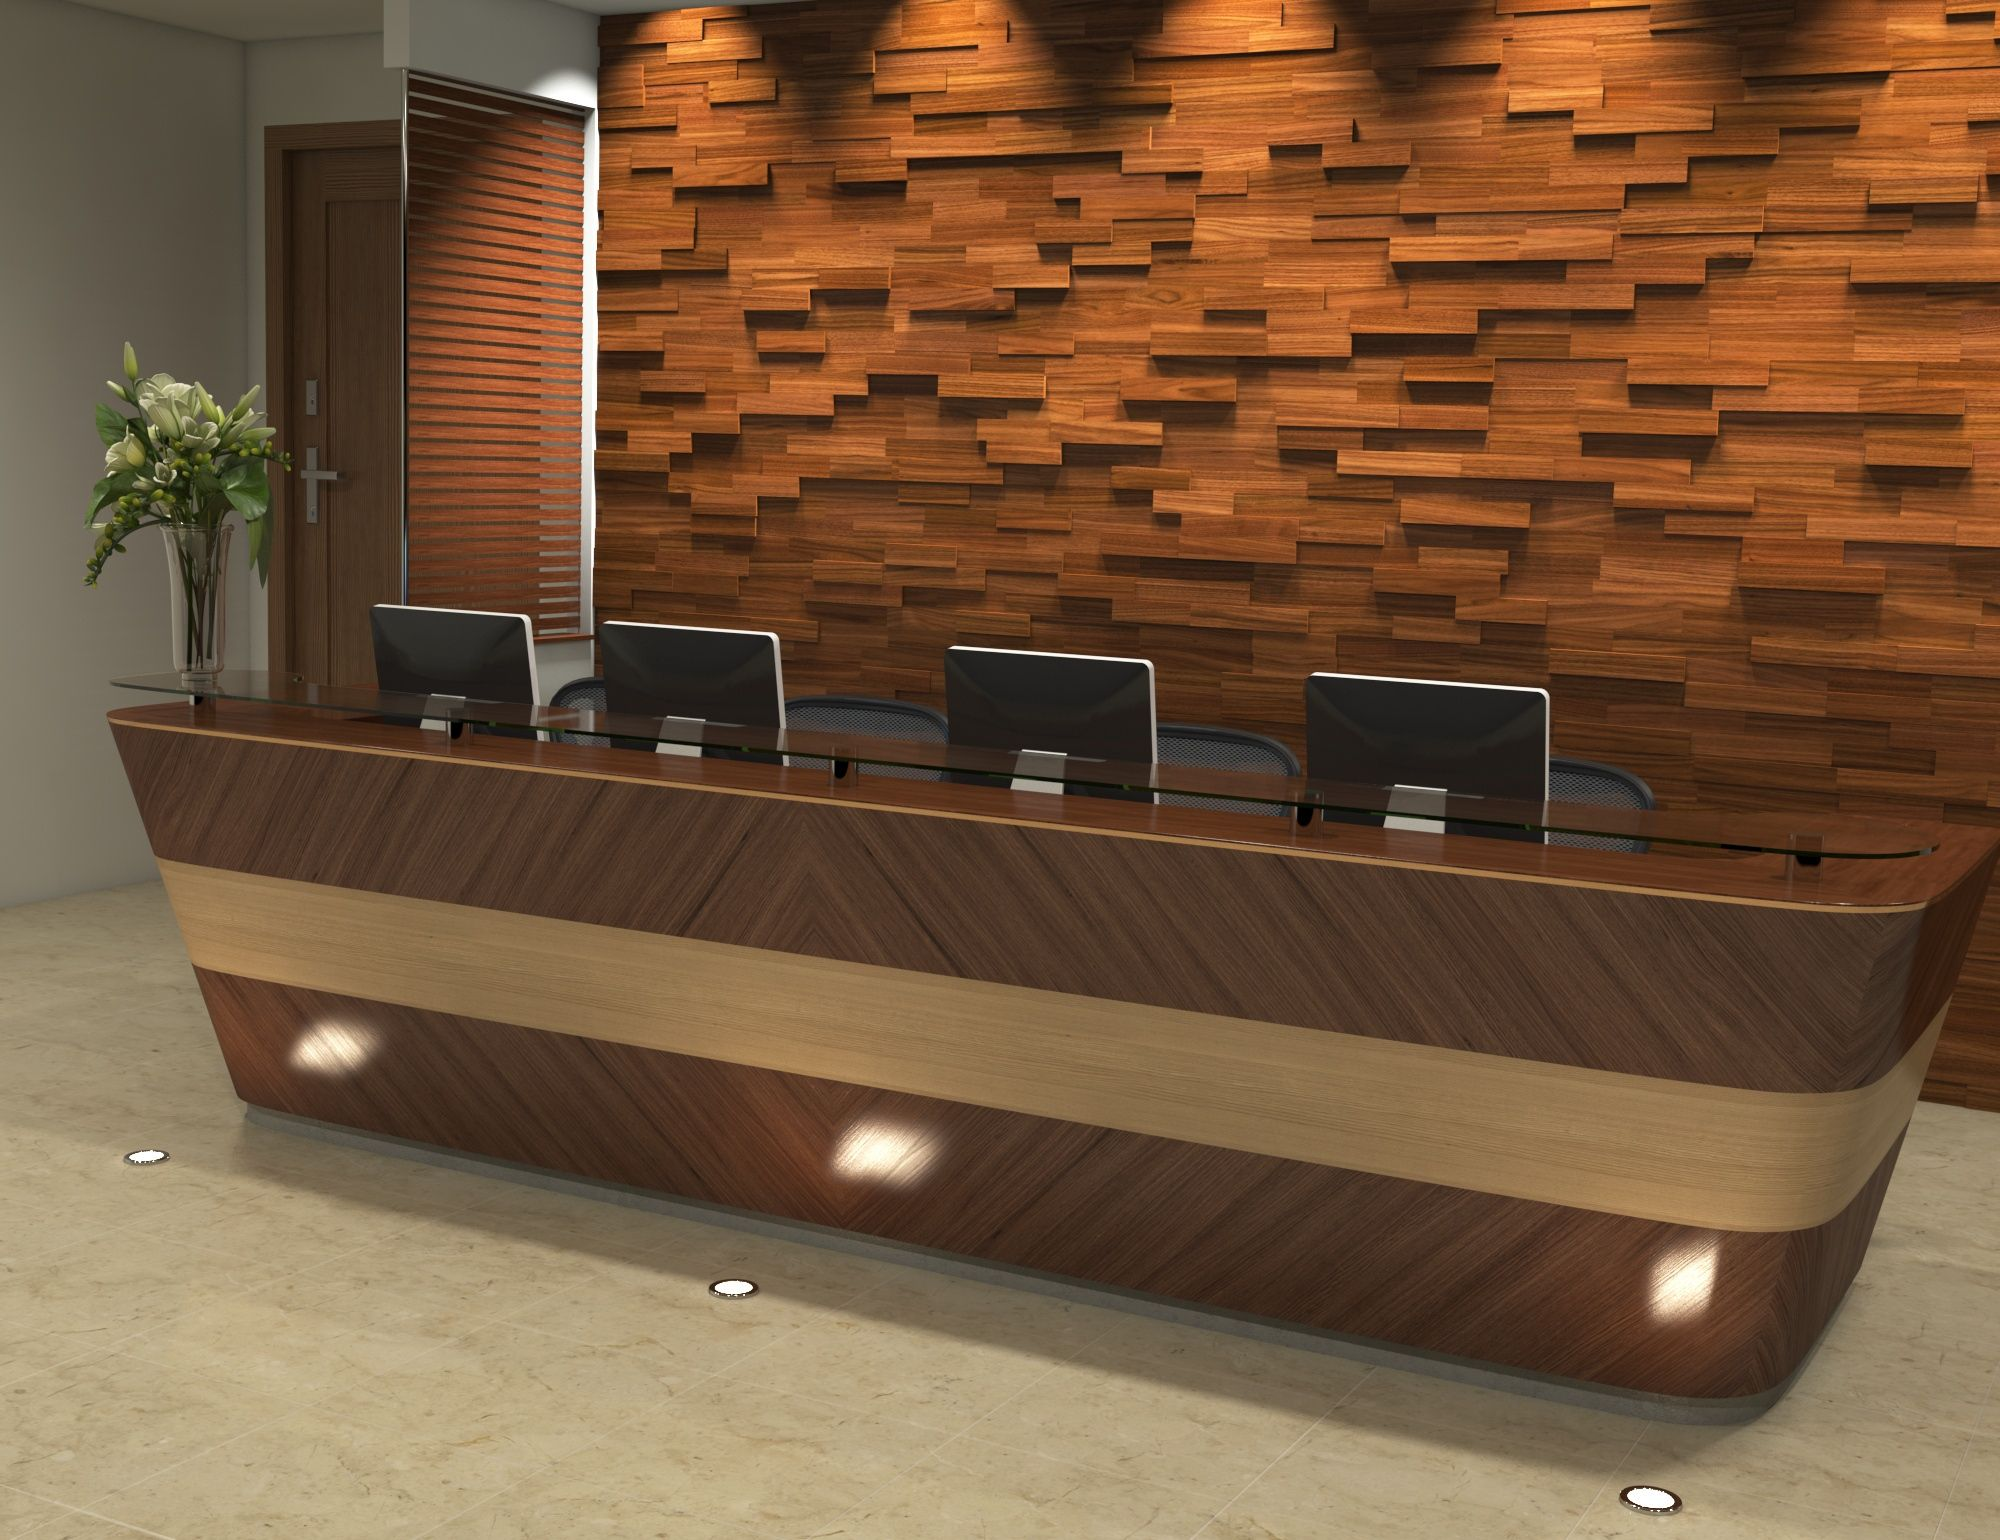 Wood Wall Paneling 3d Wood Wall Panels For Interior Walls Wood Panel Walls Wood Wall Wall Paneling